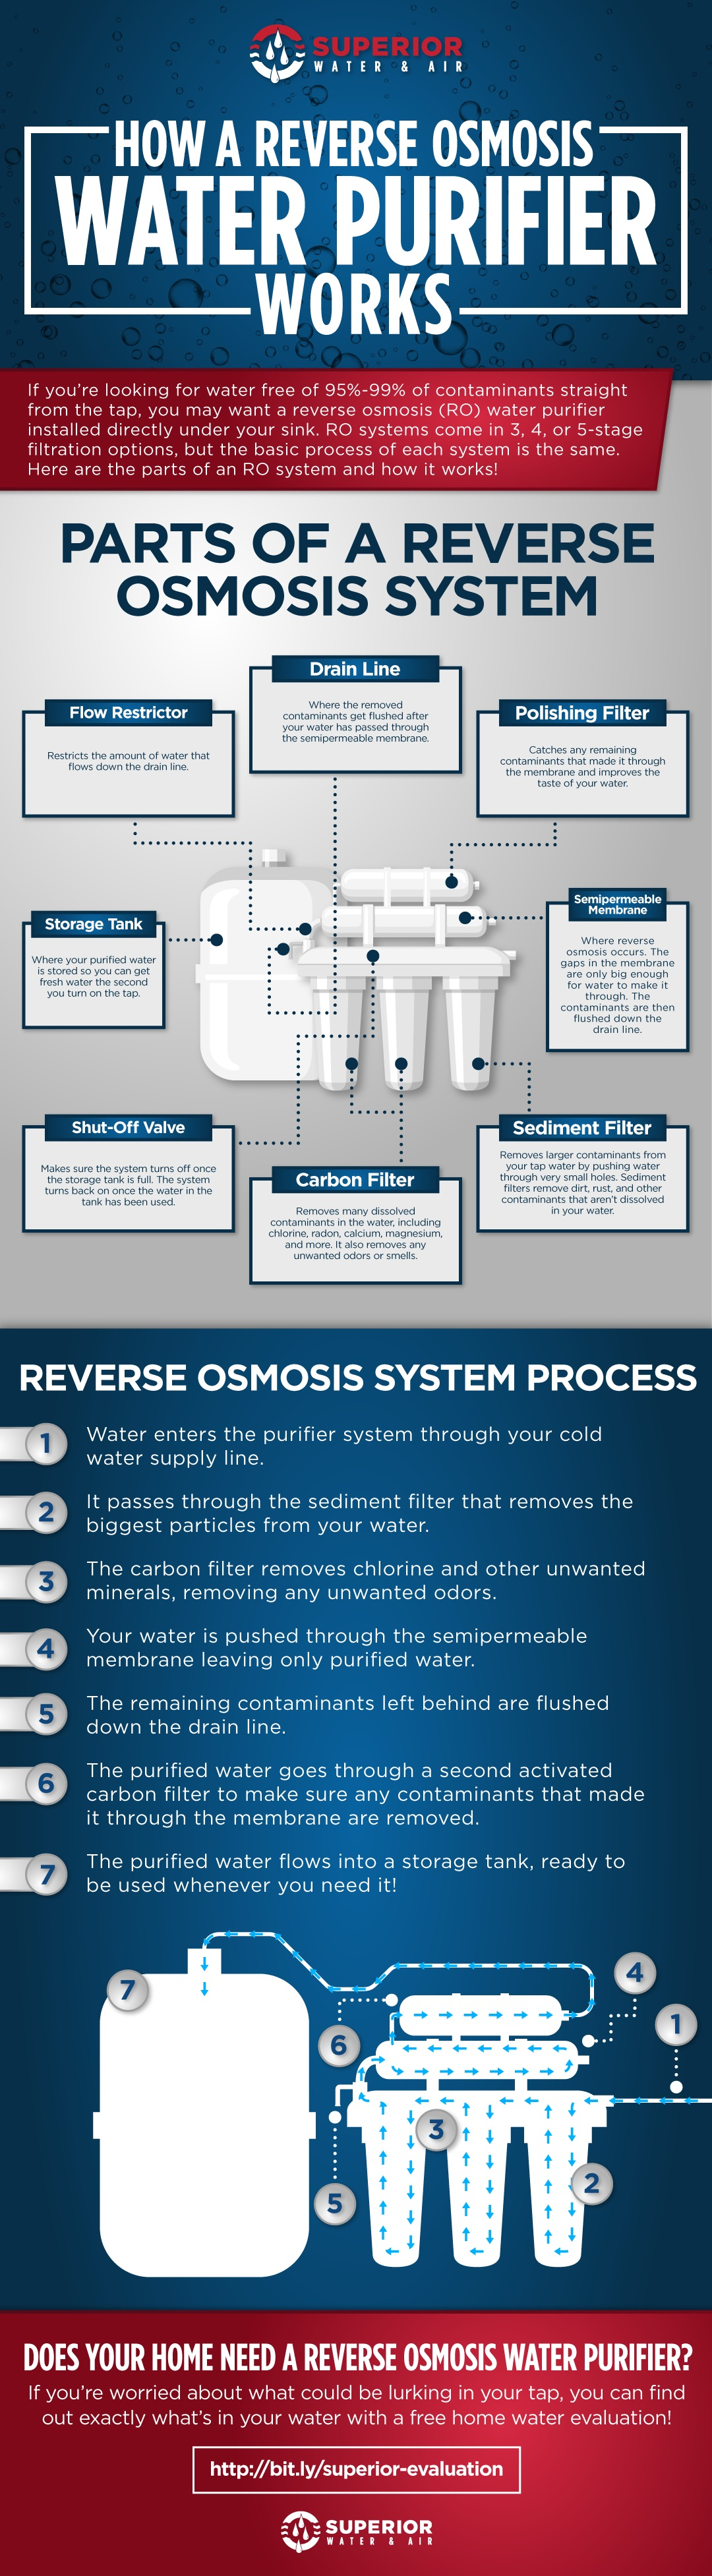 A diagram of a reverse osmosis water purifier and how it works.